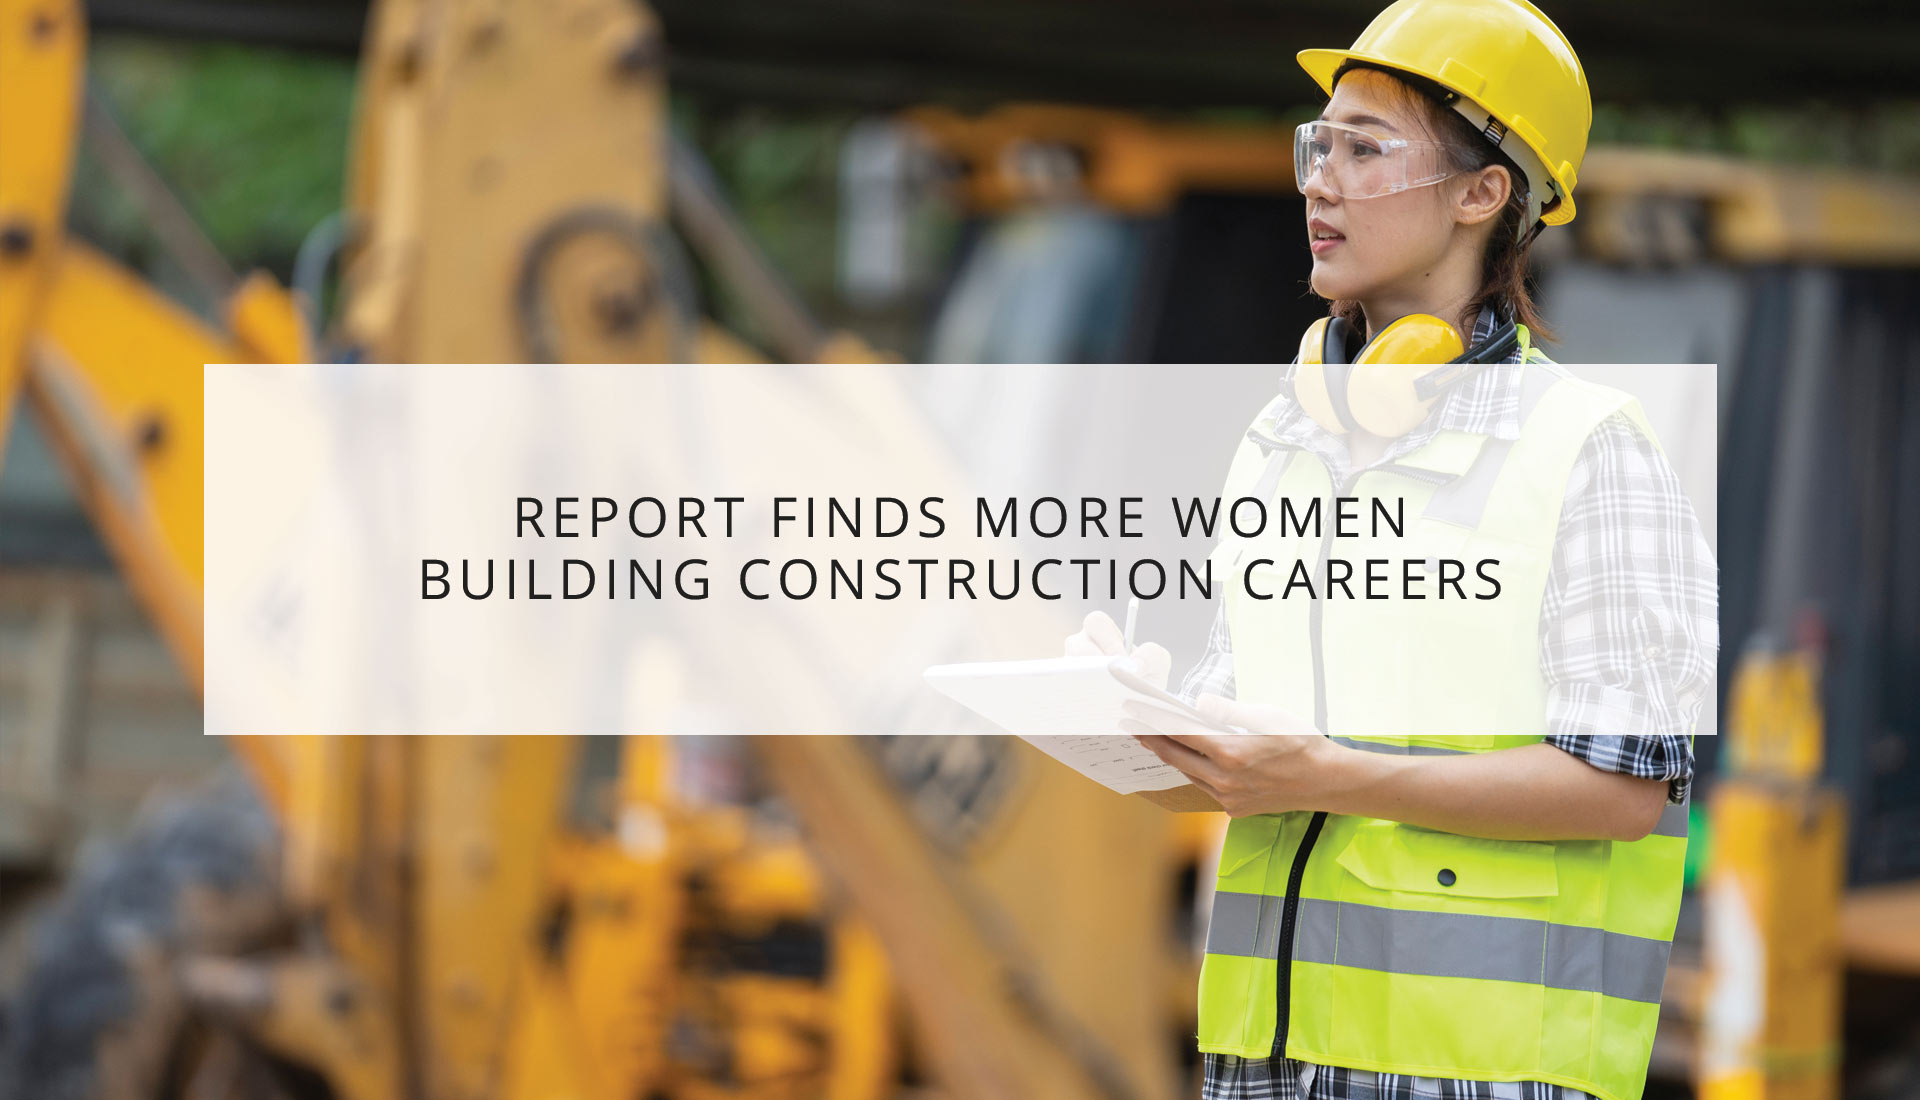 Report Finds More Women Building Construction